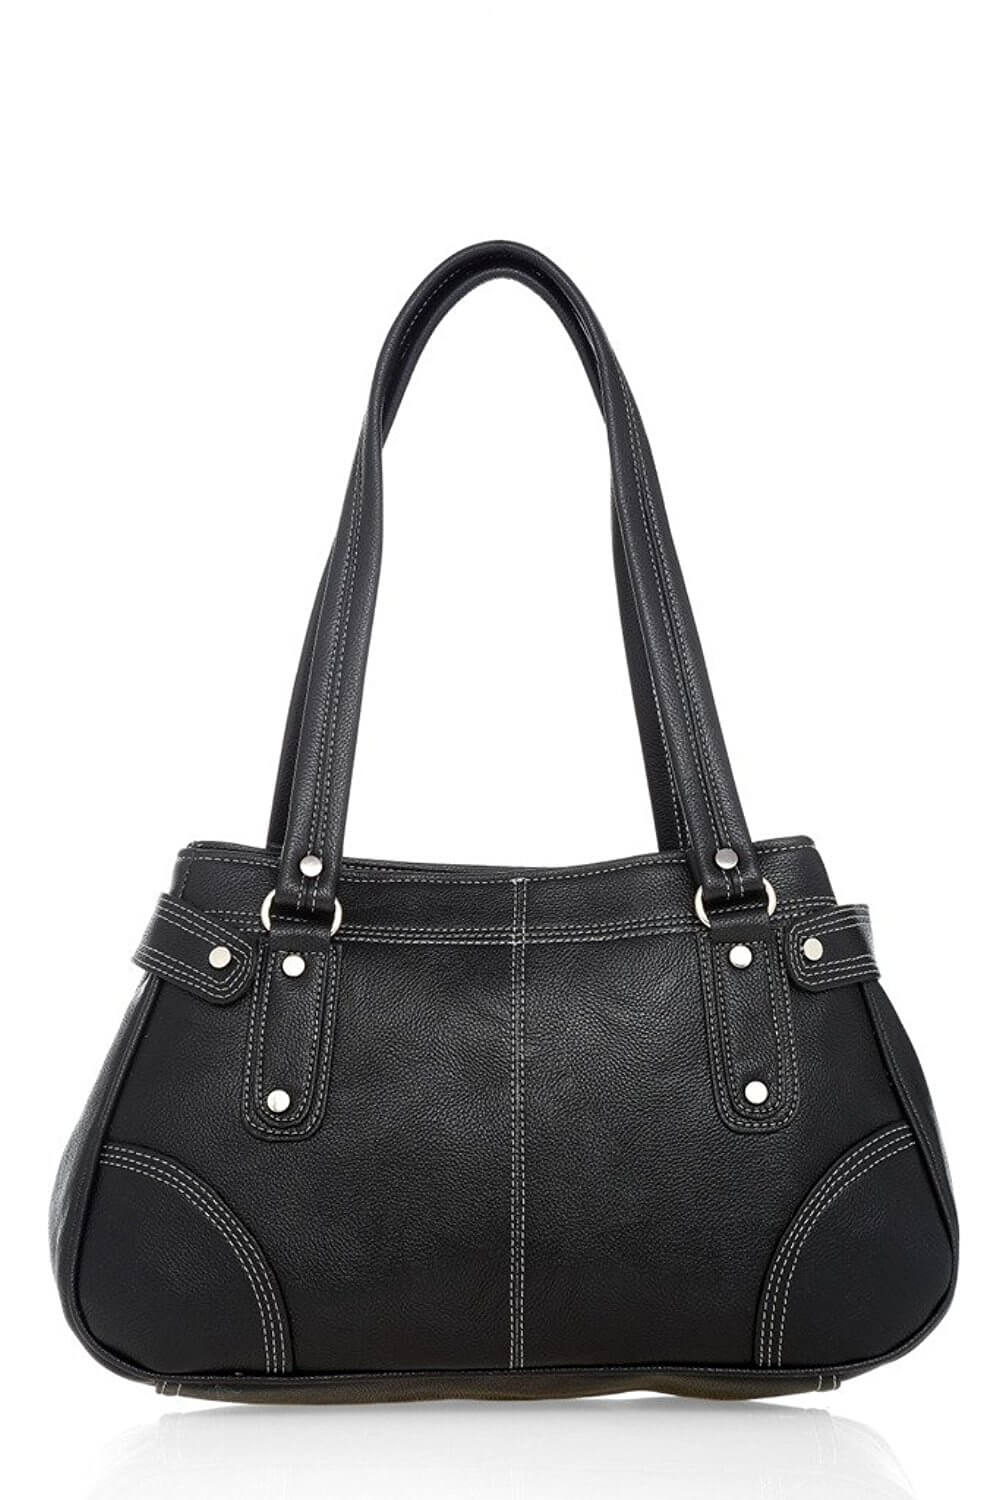 Lady queen casual bag LD - 369